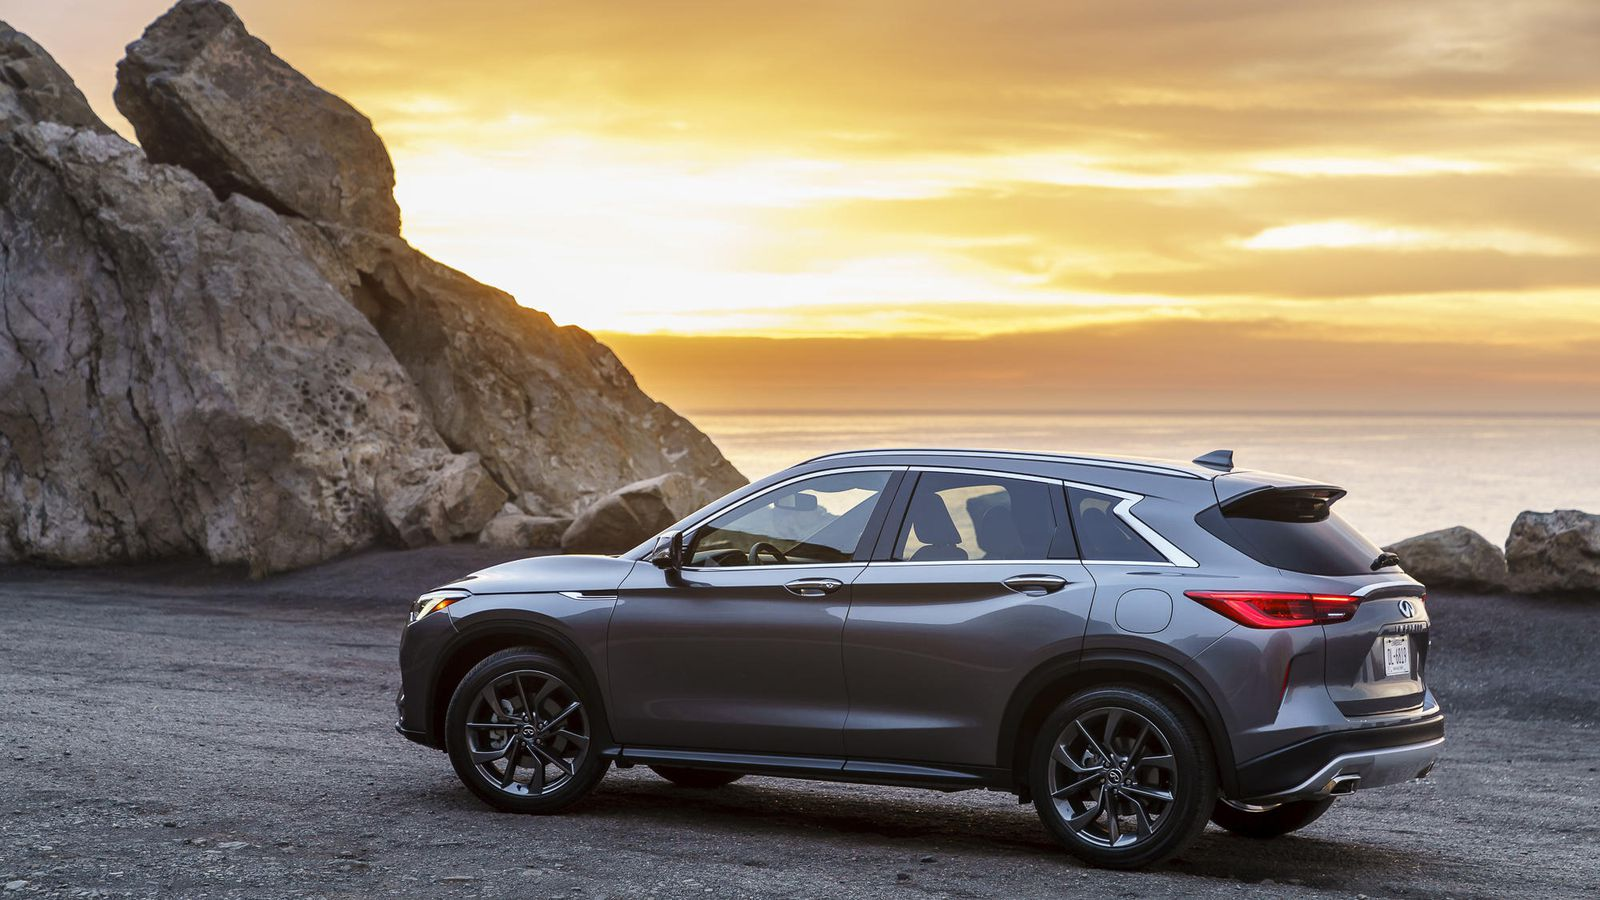 14 The 2020 Infiniti QX50 Exterior and Interior